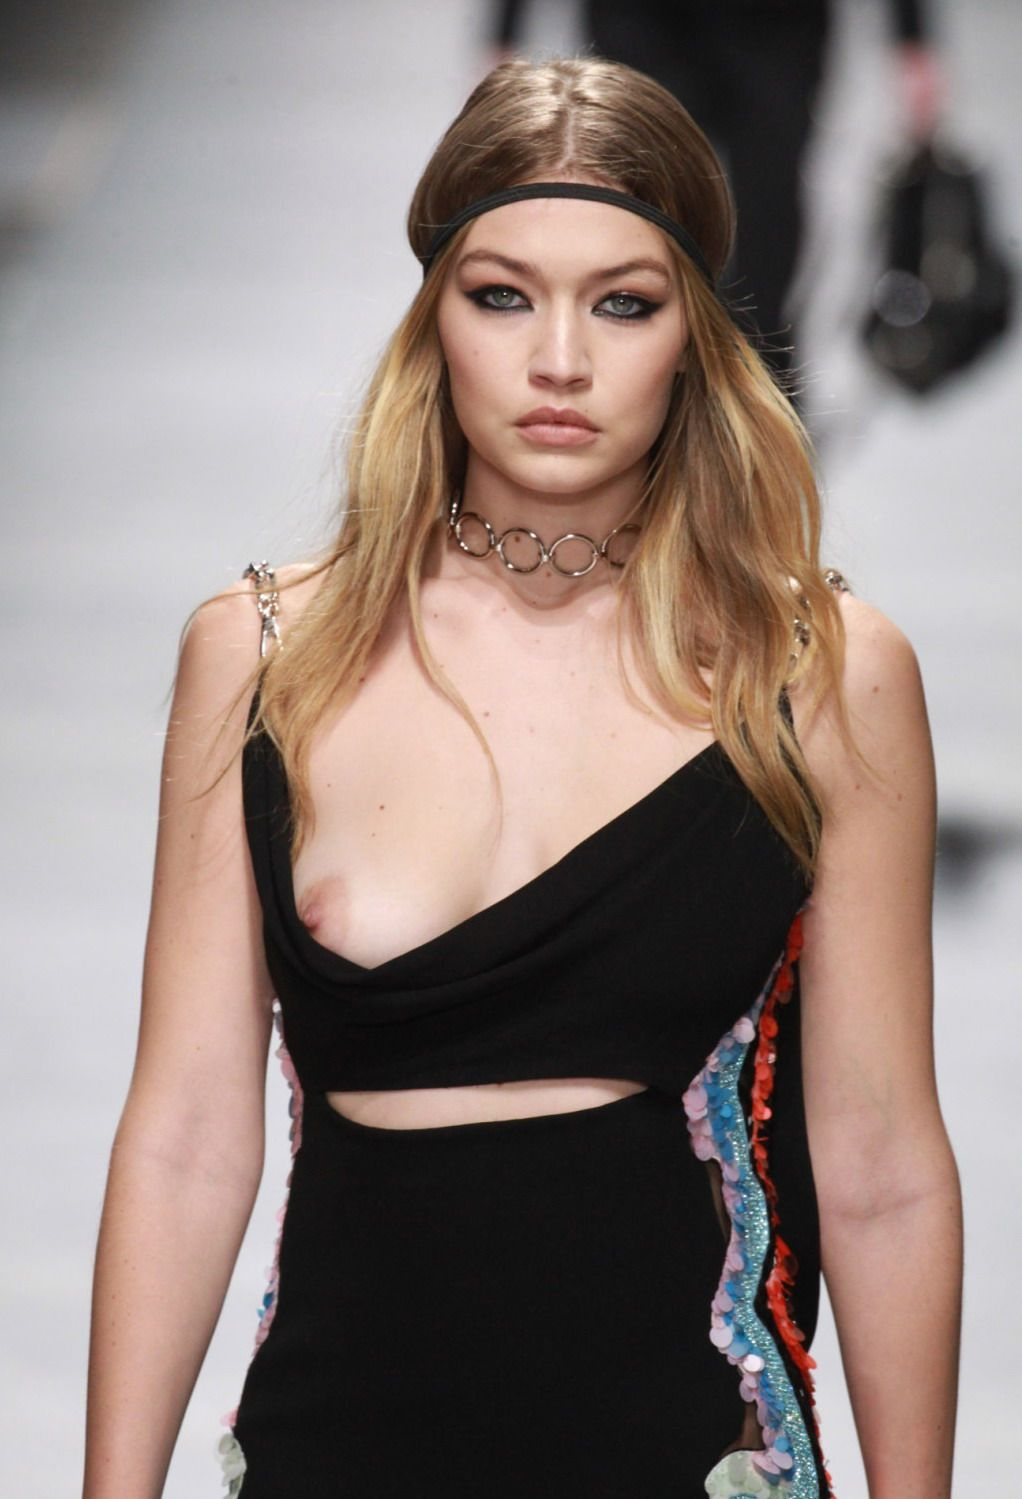 Gigi Hadid Boobslip Photo...